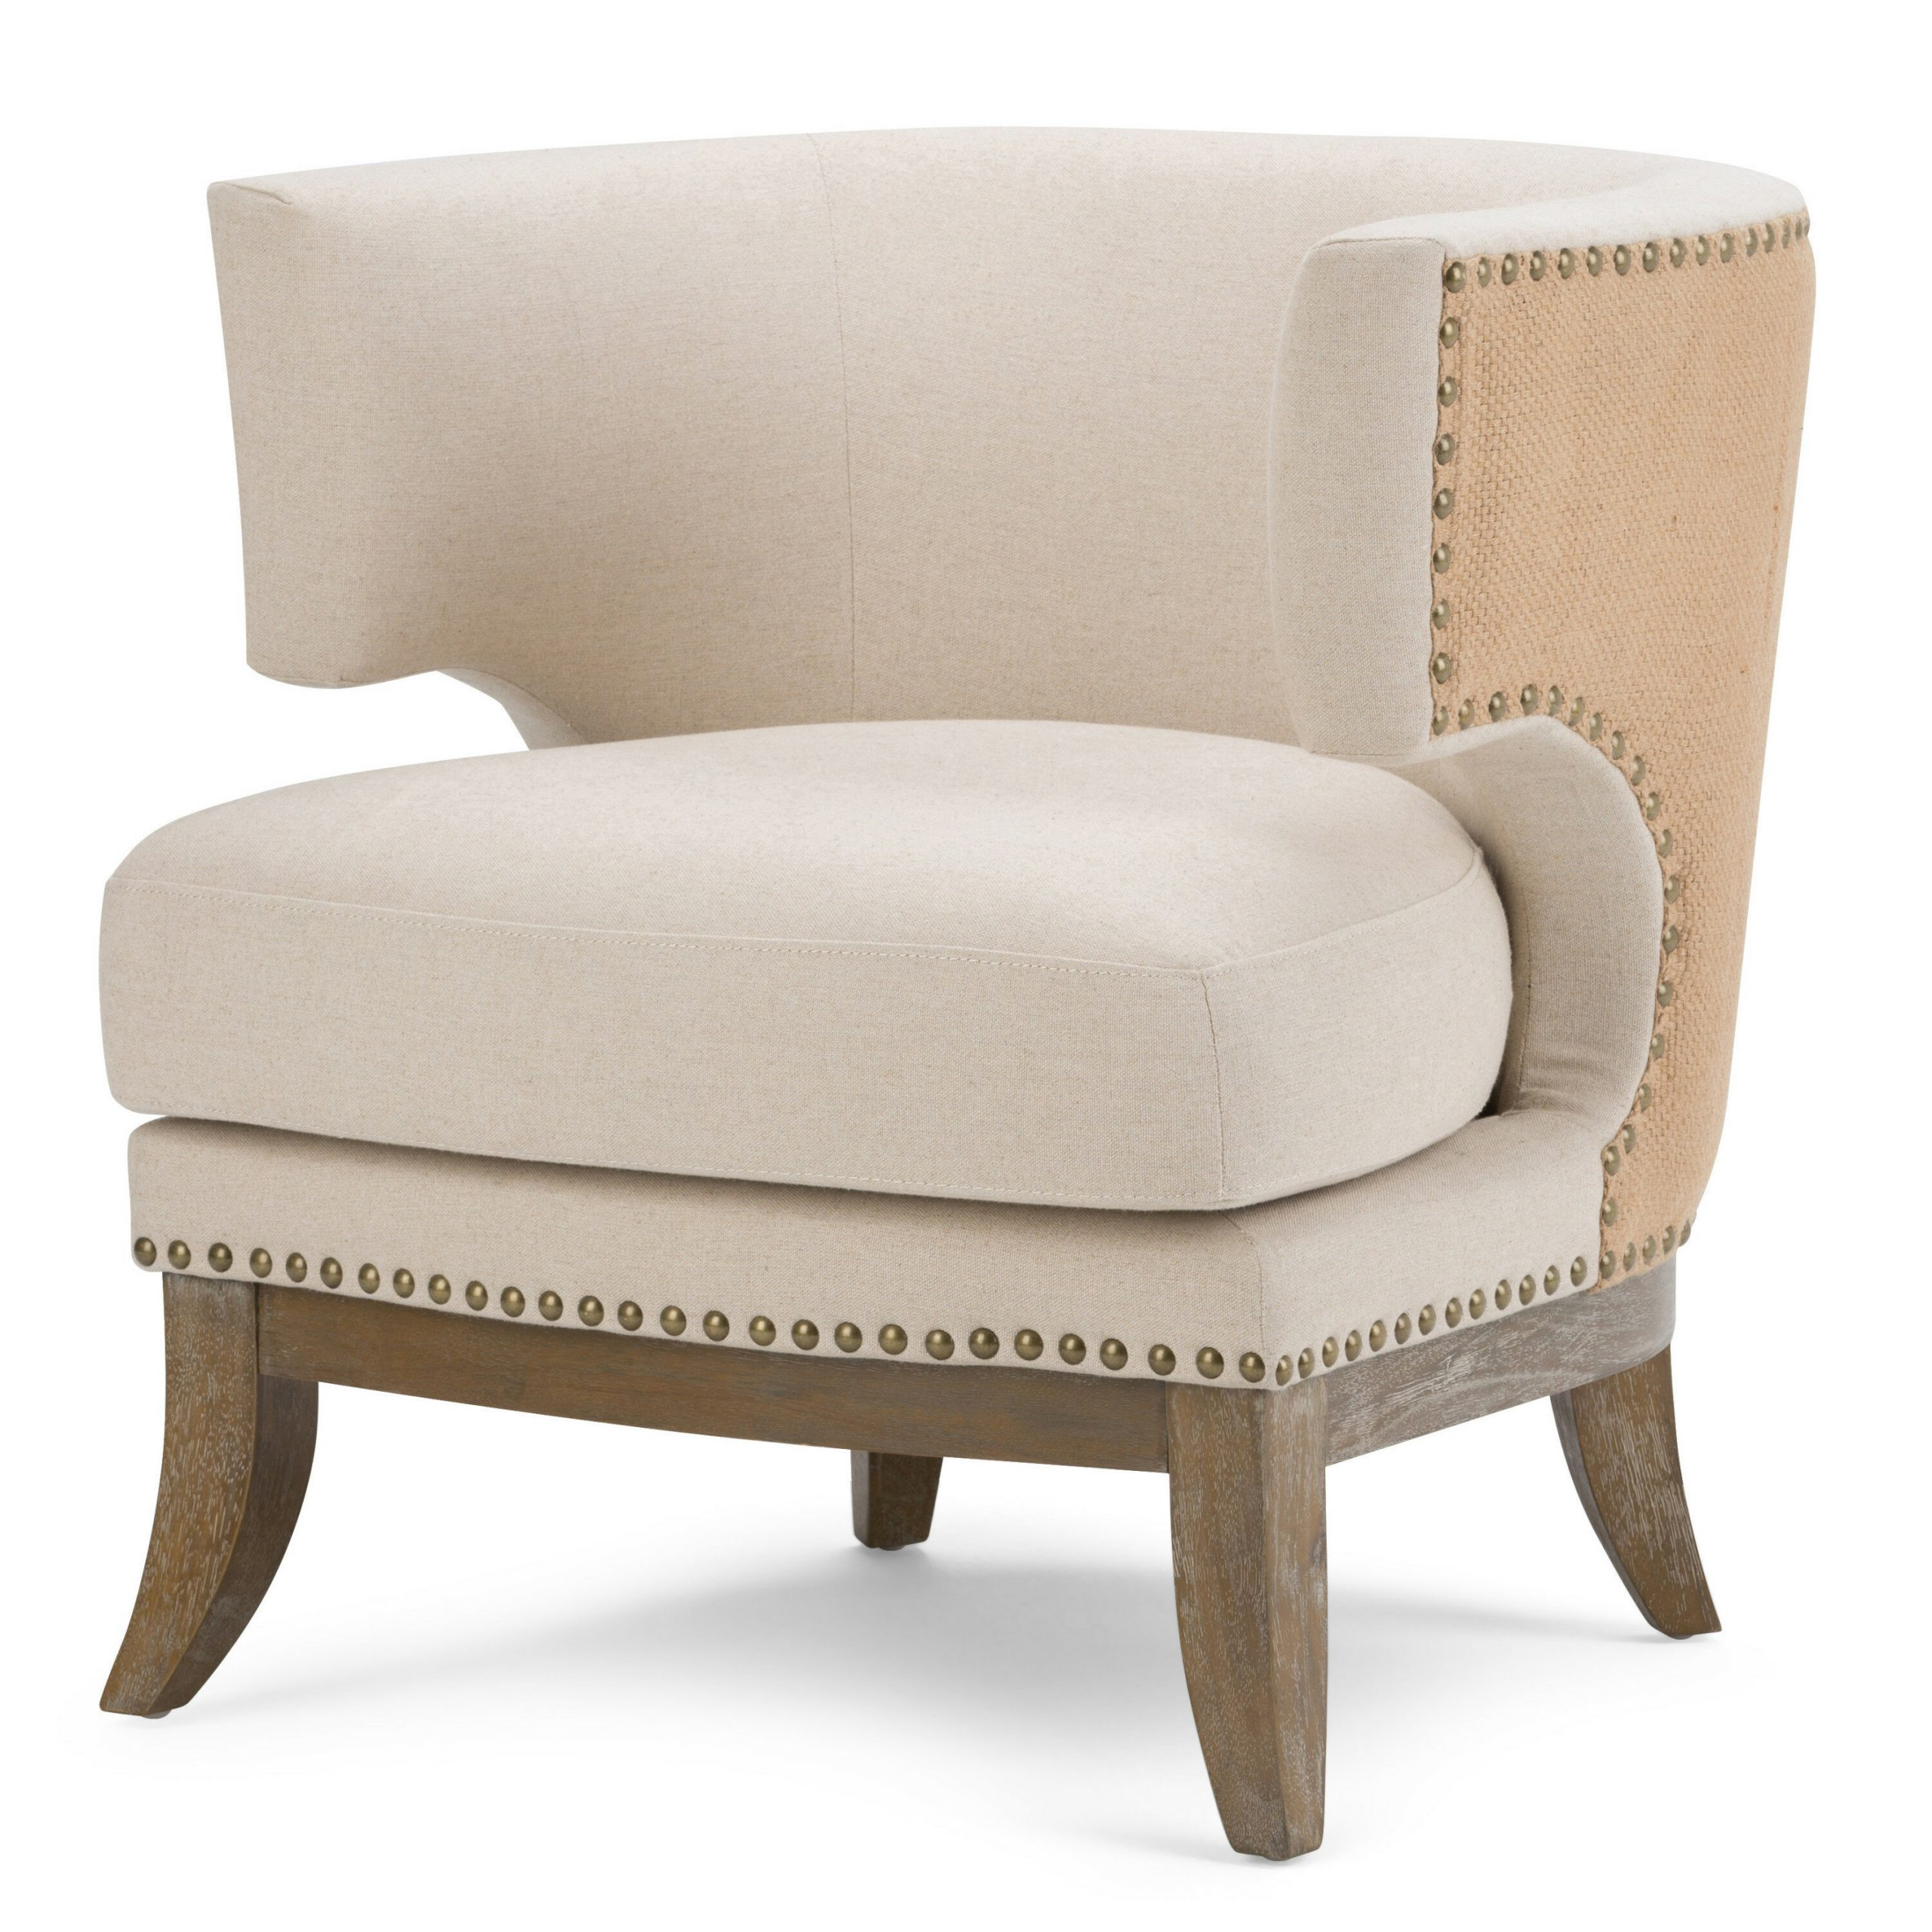 Jaden Barrel Chair Regarding Barnard Polyester Barrel Chairs (View 7 of 15)